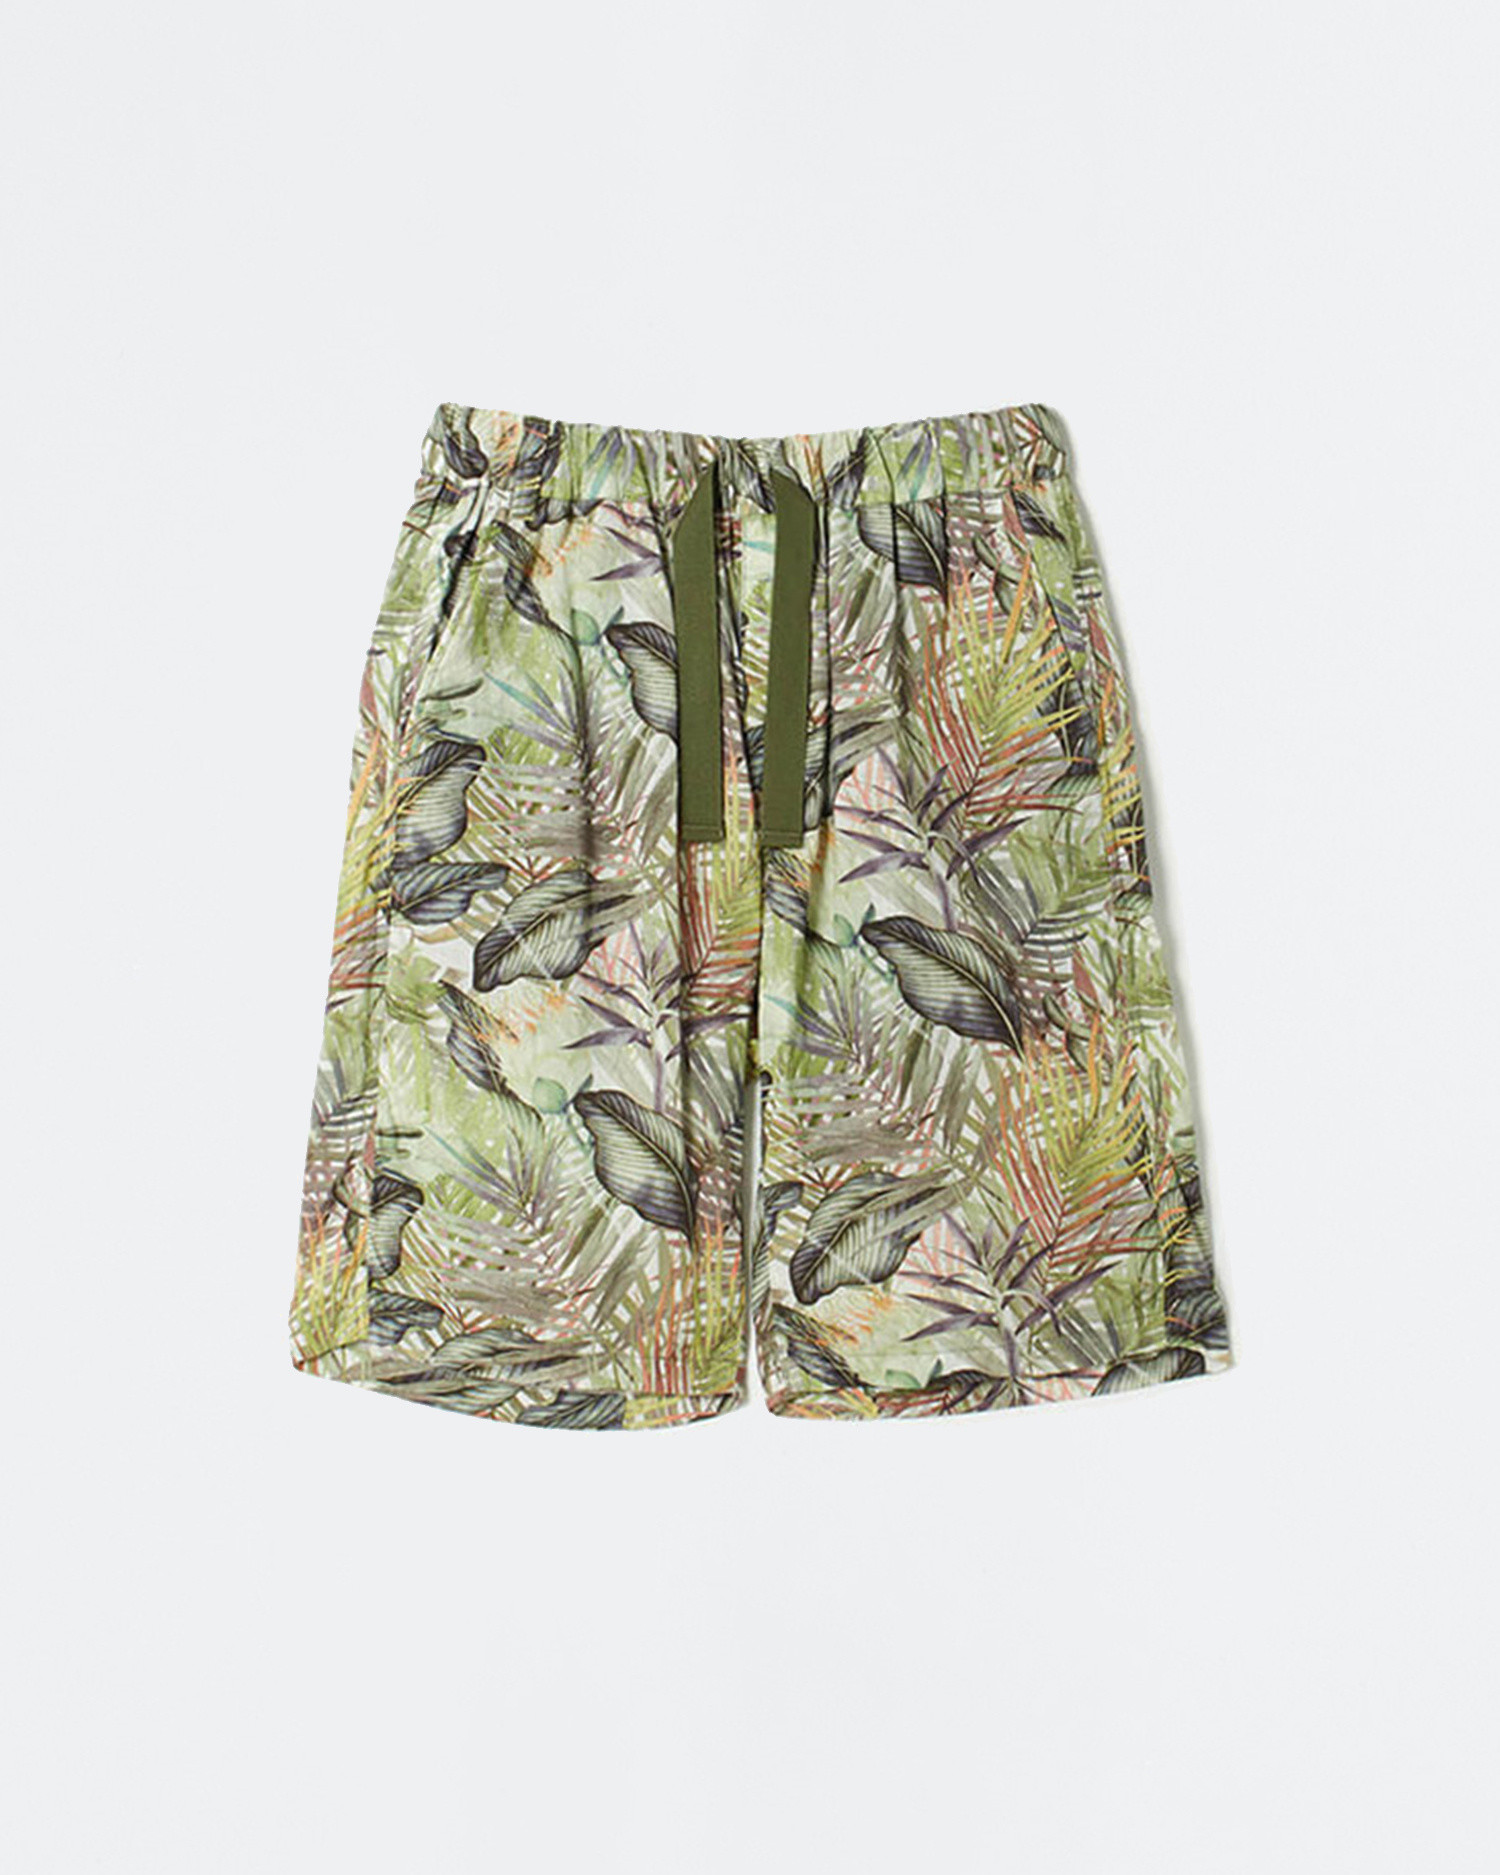 White Mountaineering Woven Pant Botanical Printed Easy Short Pants